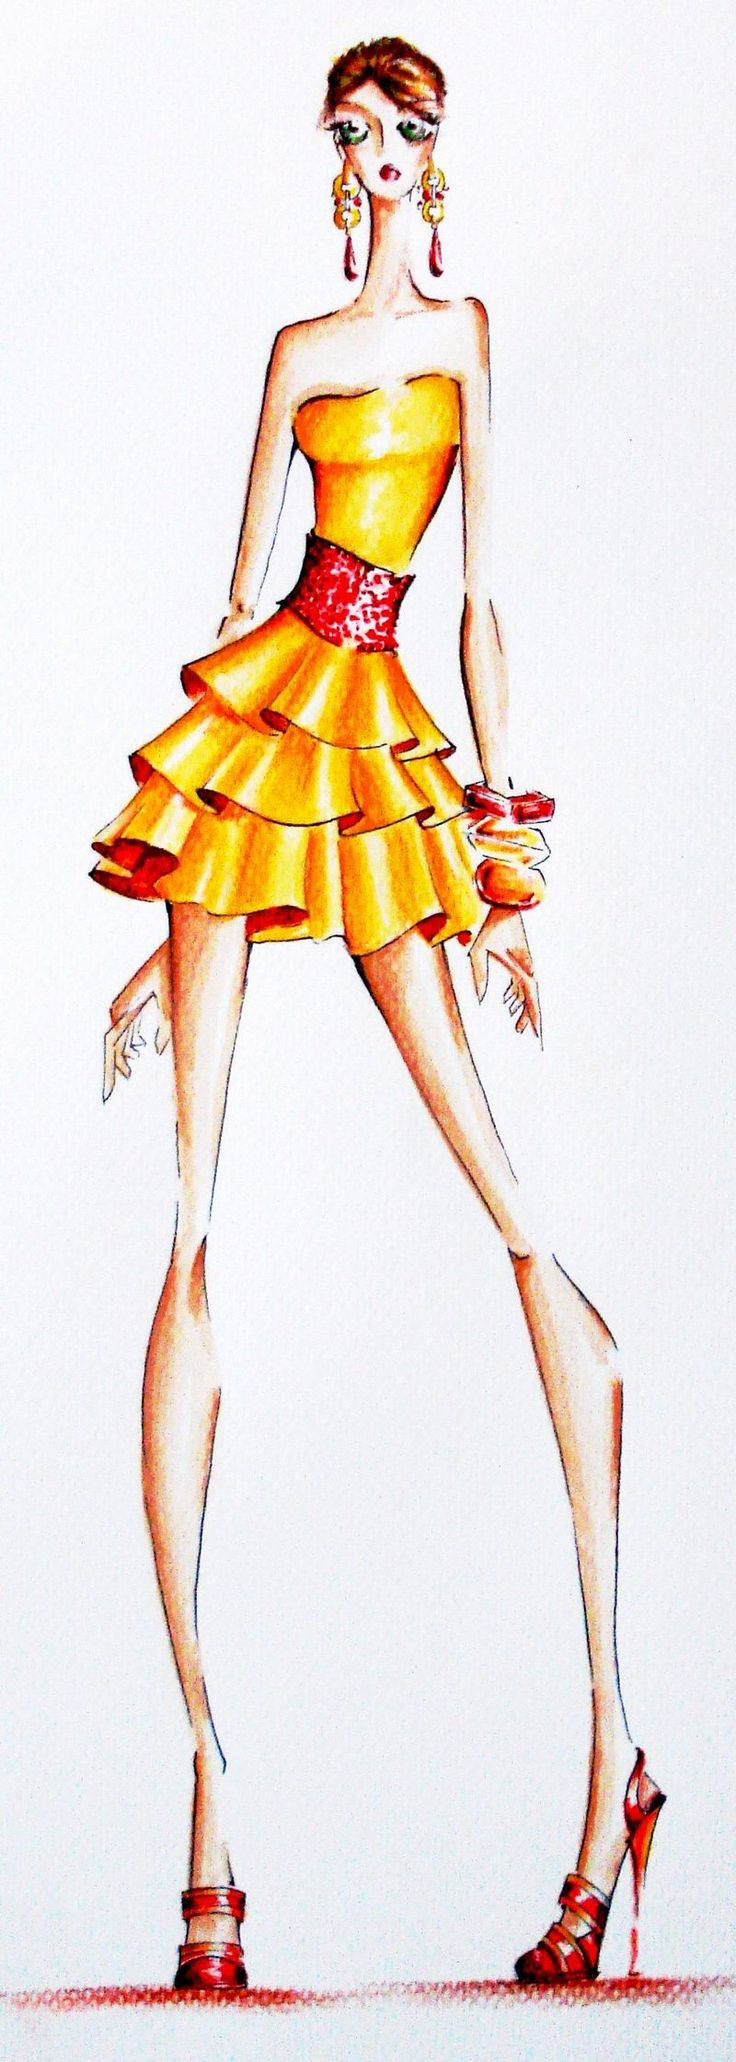 Yellow Dress by robzae on deviantART---like the croquis